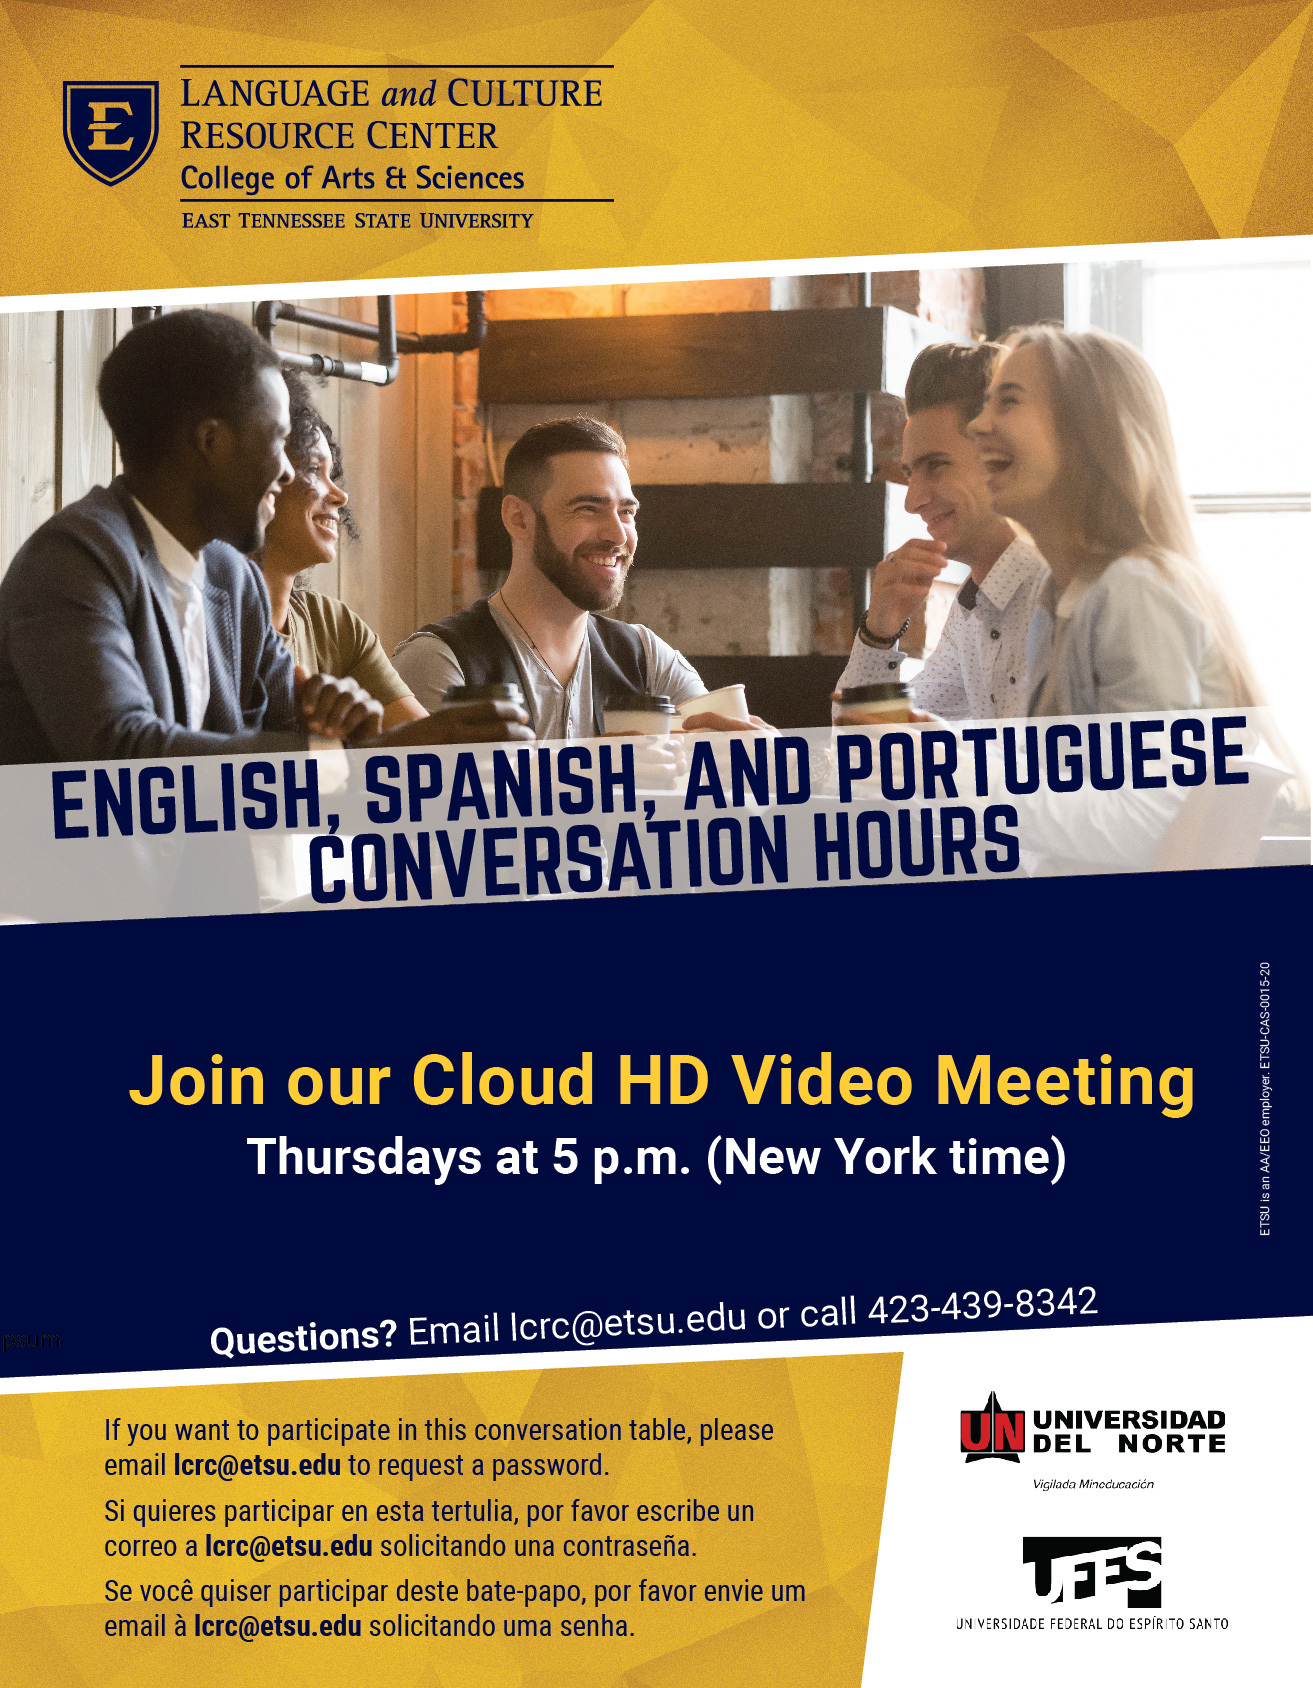 English, Spanish, and Portuguese Conversation Hours